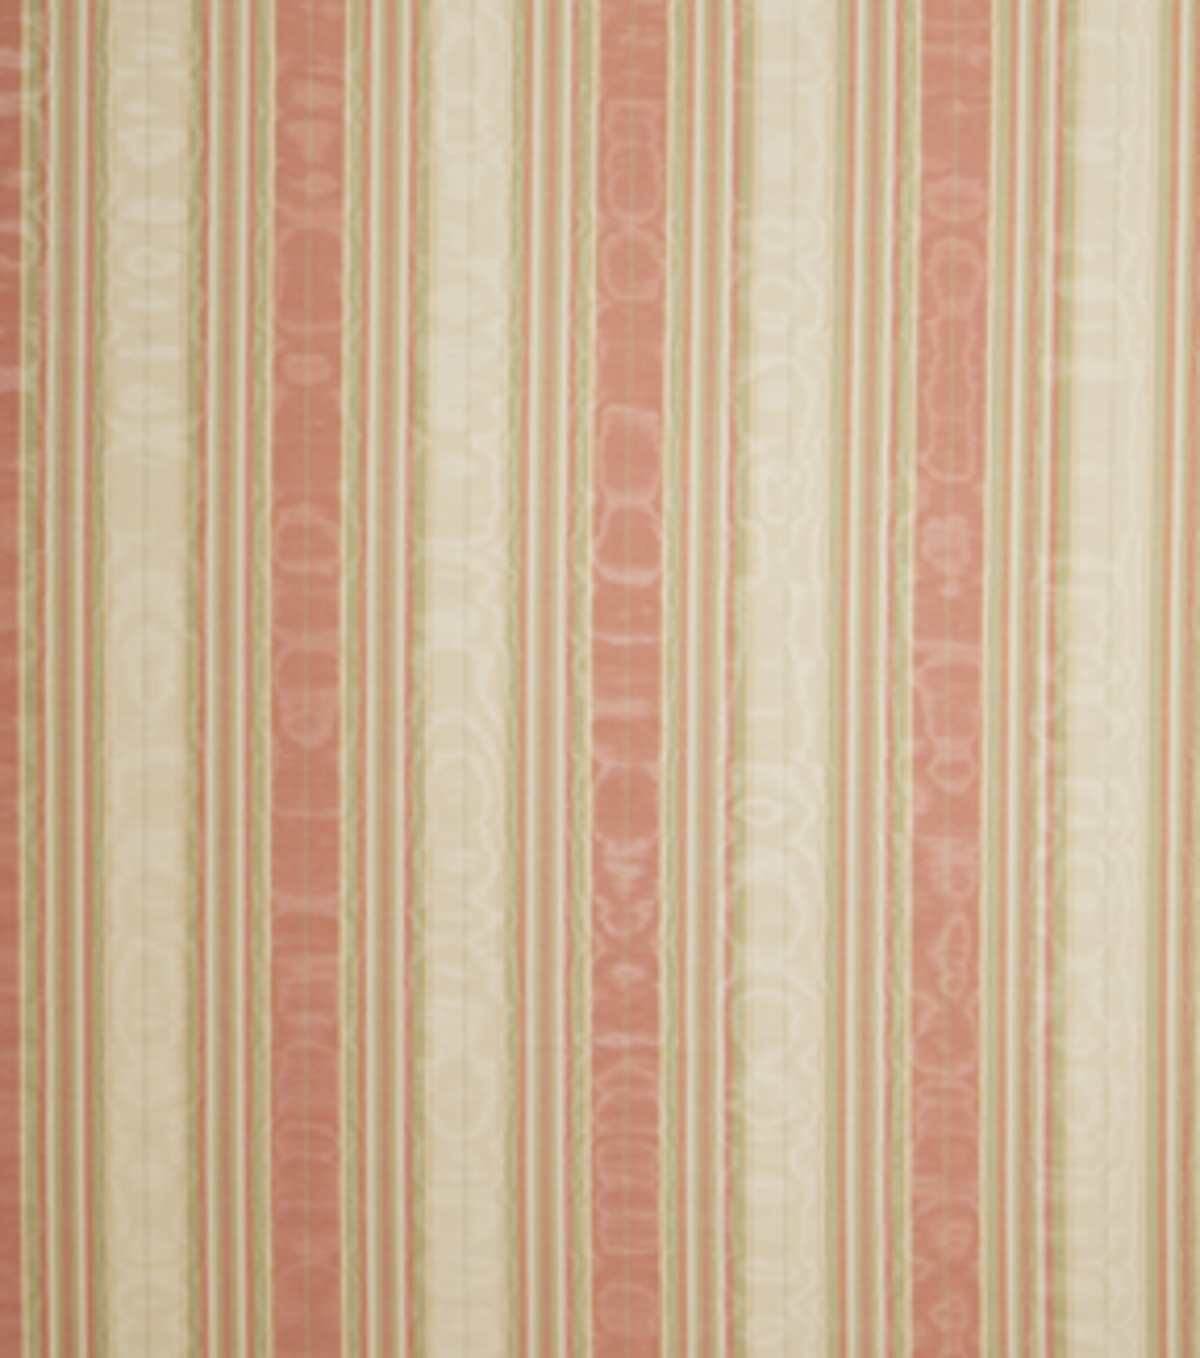 Home Decor 8\u0022x8\u0022 Fabric Swatch-Eaton Square Circus Animal Candy